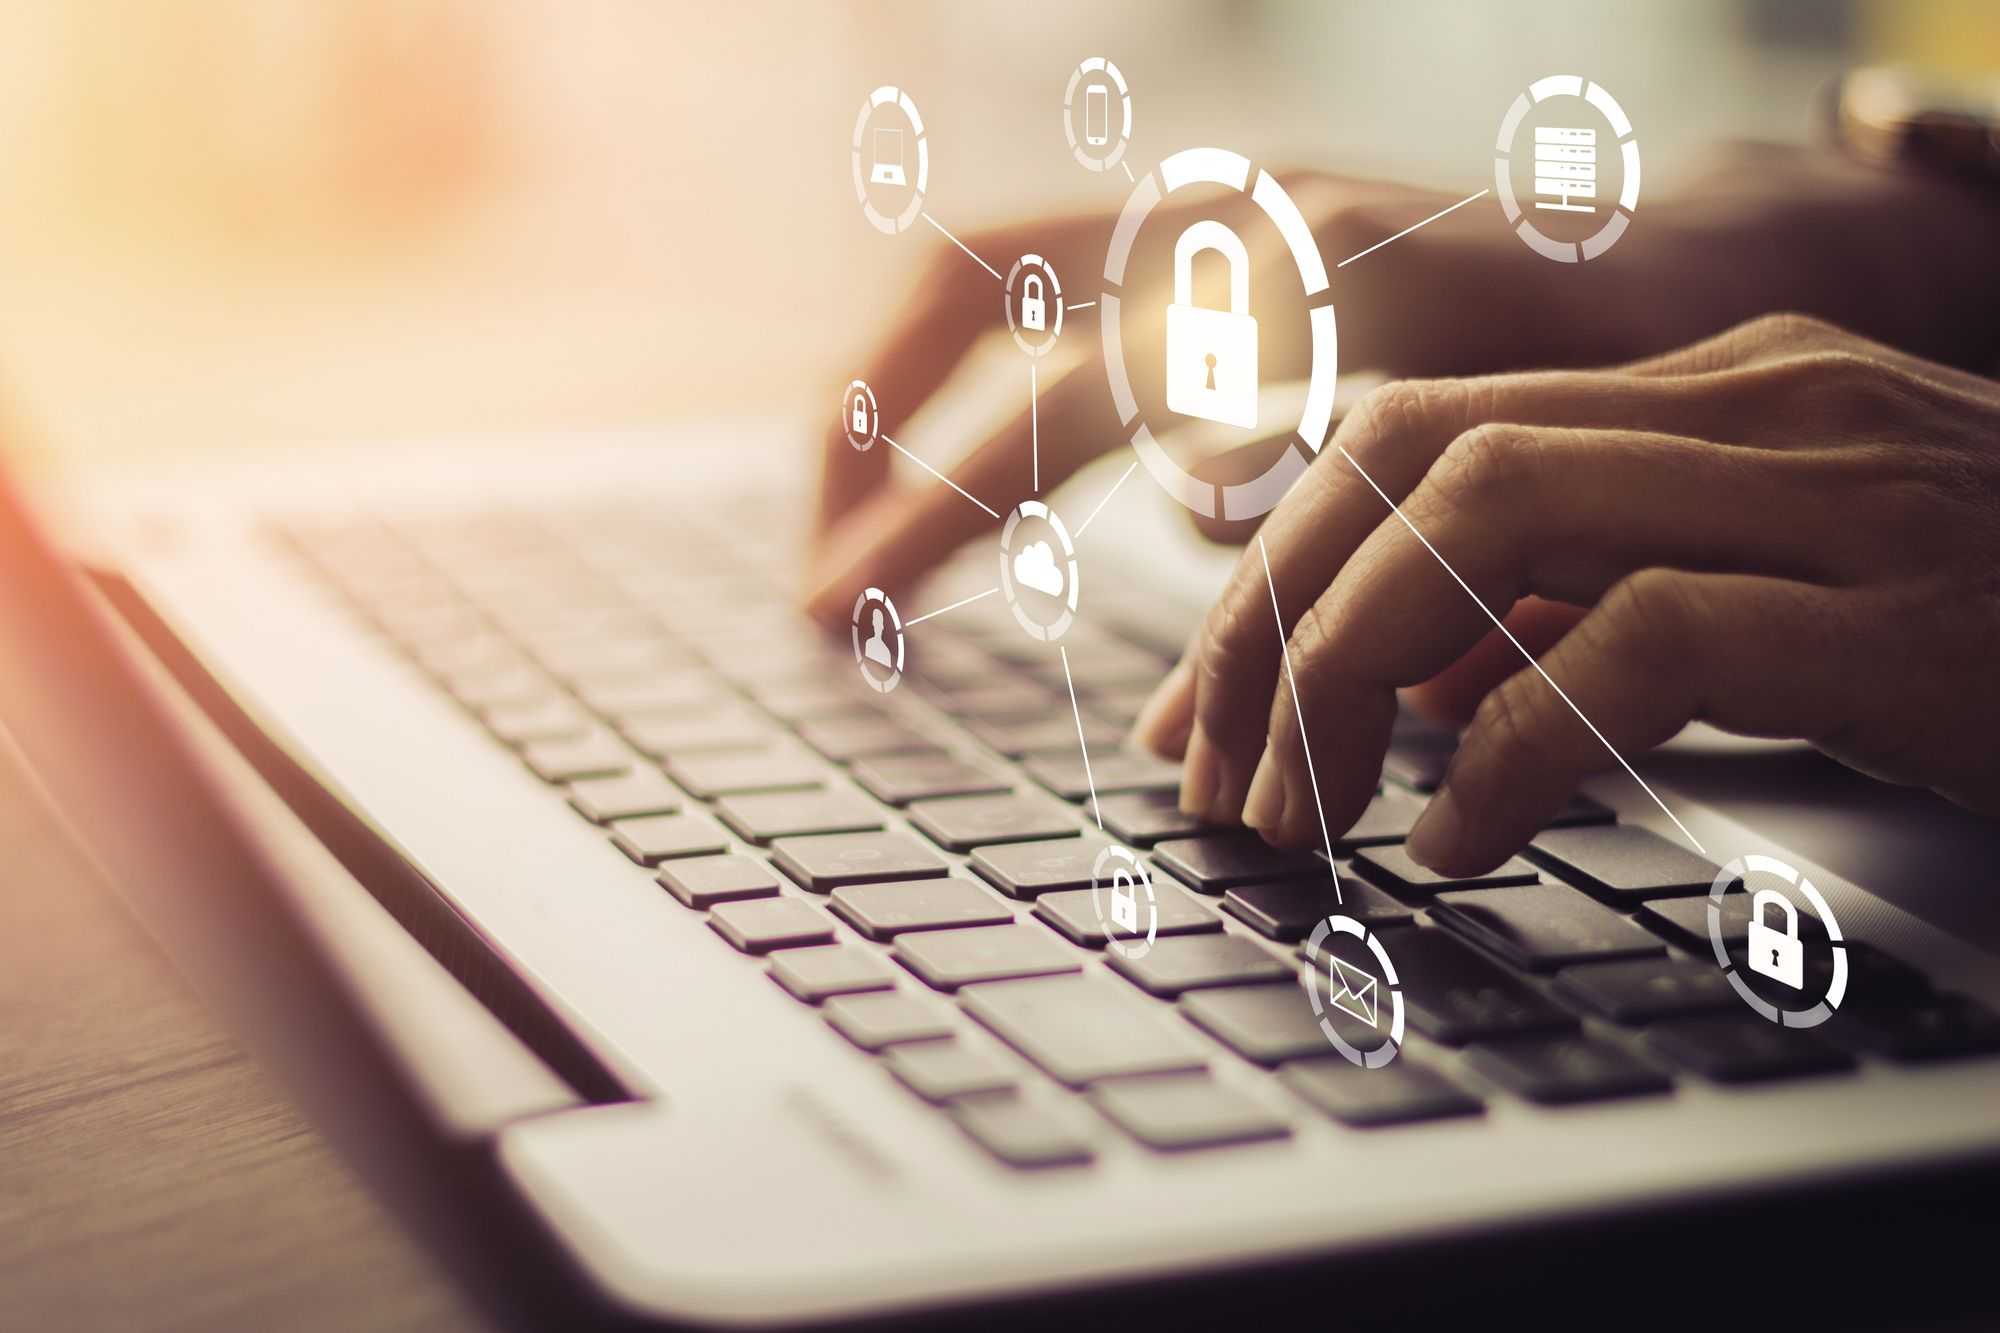 Does Customer Data Privacy Actually Matter? It Should.